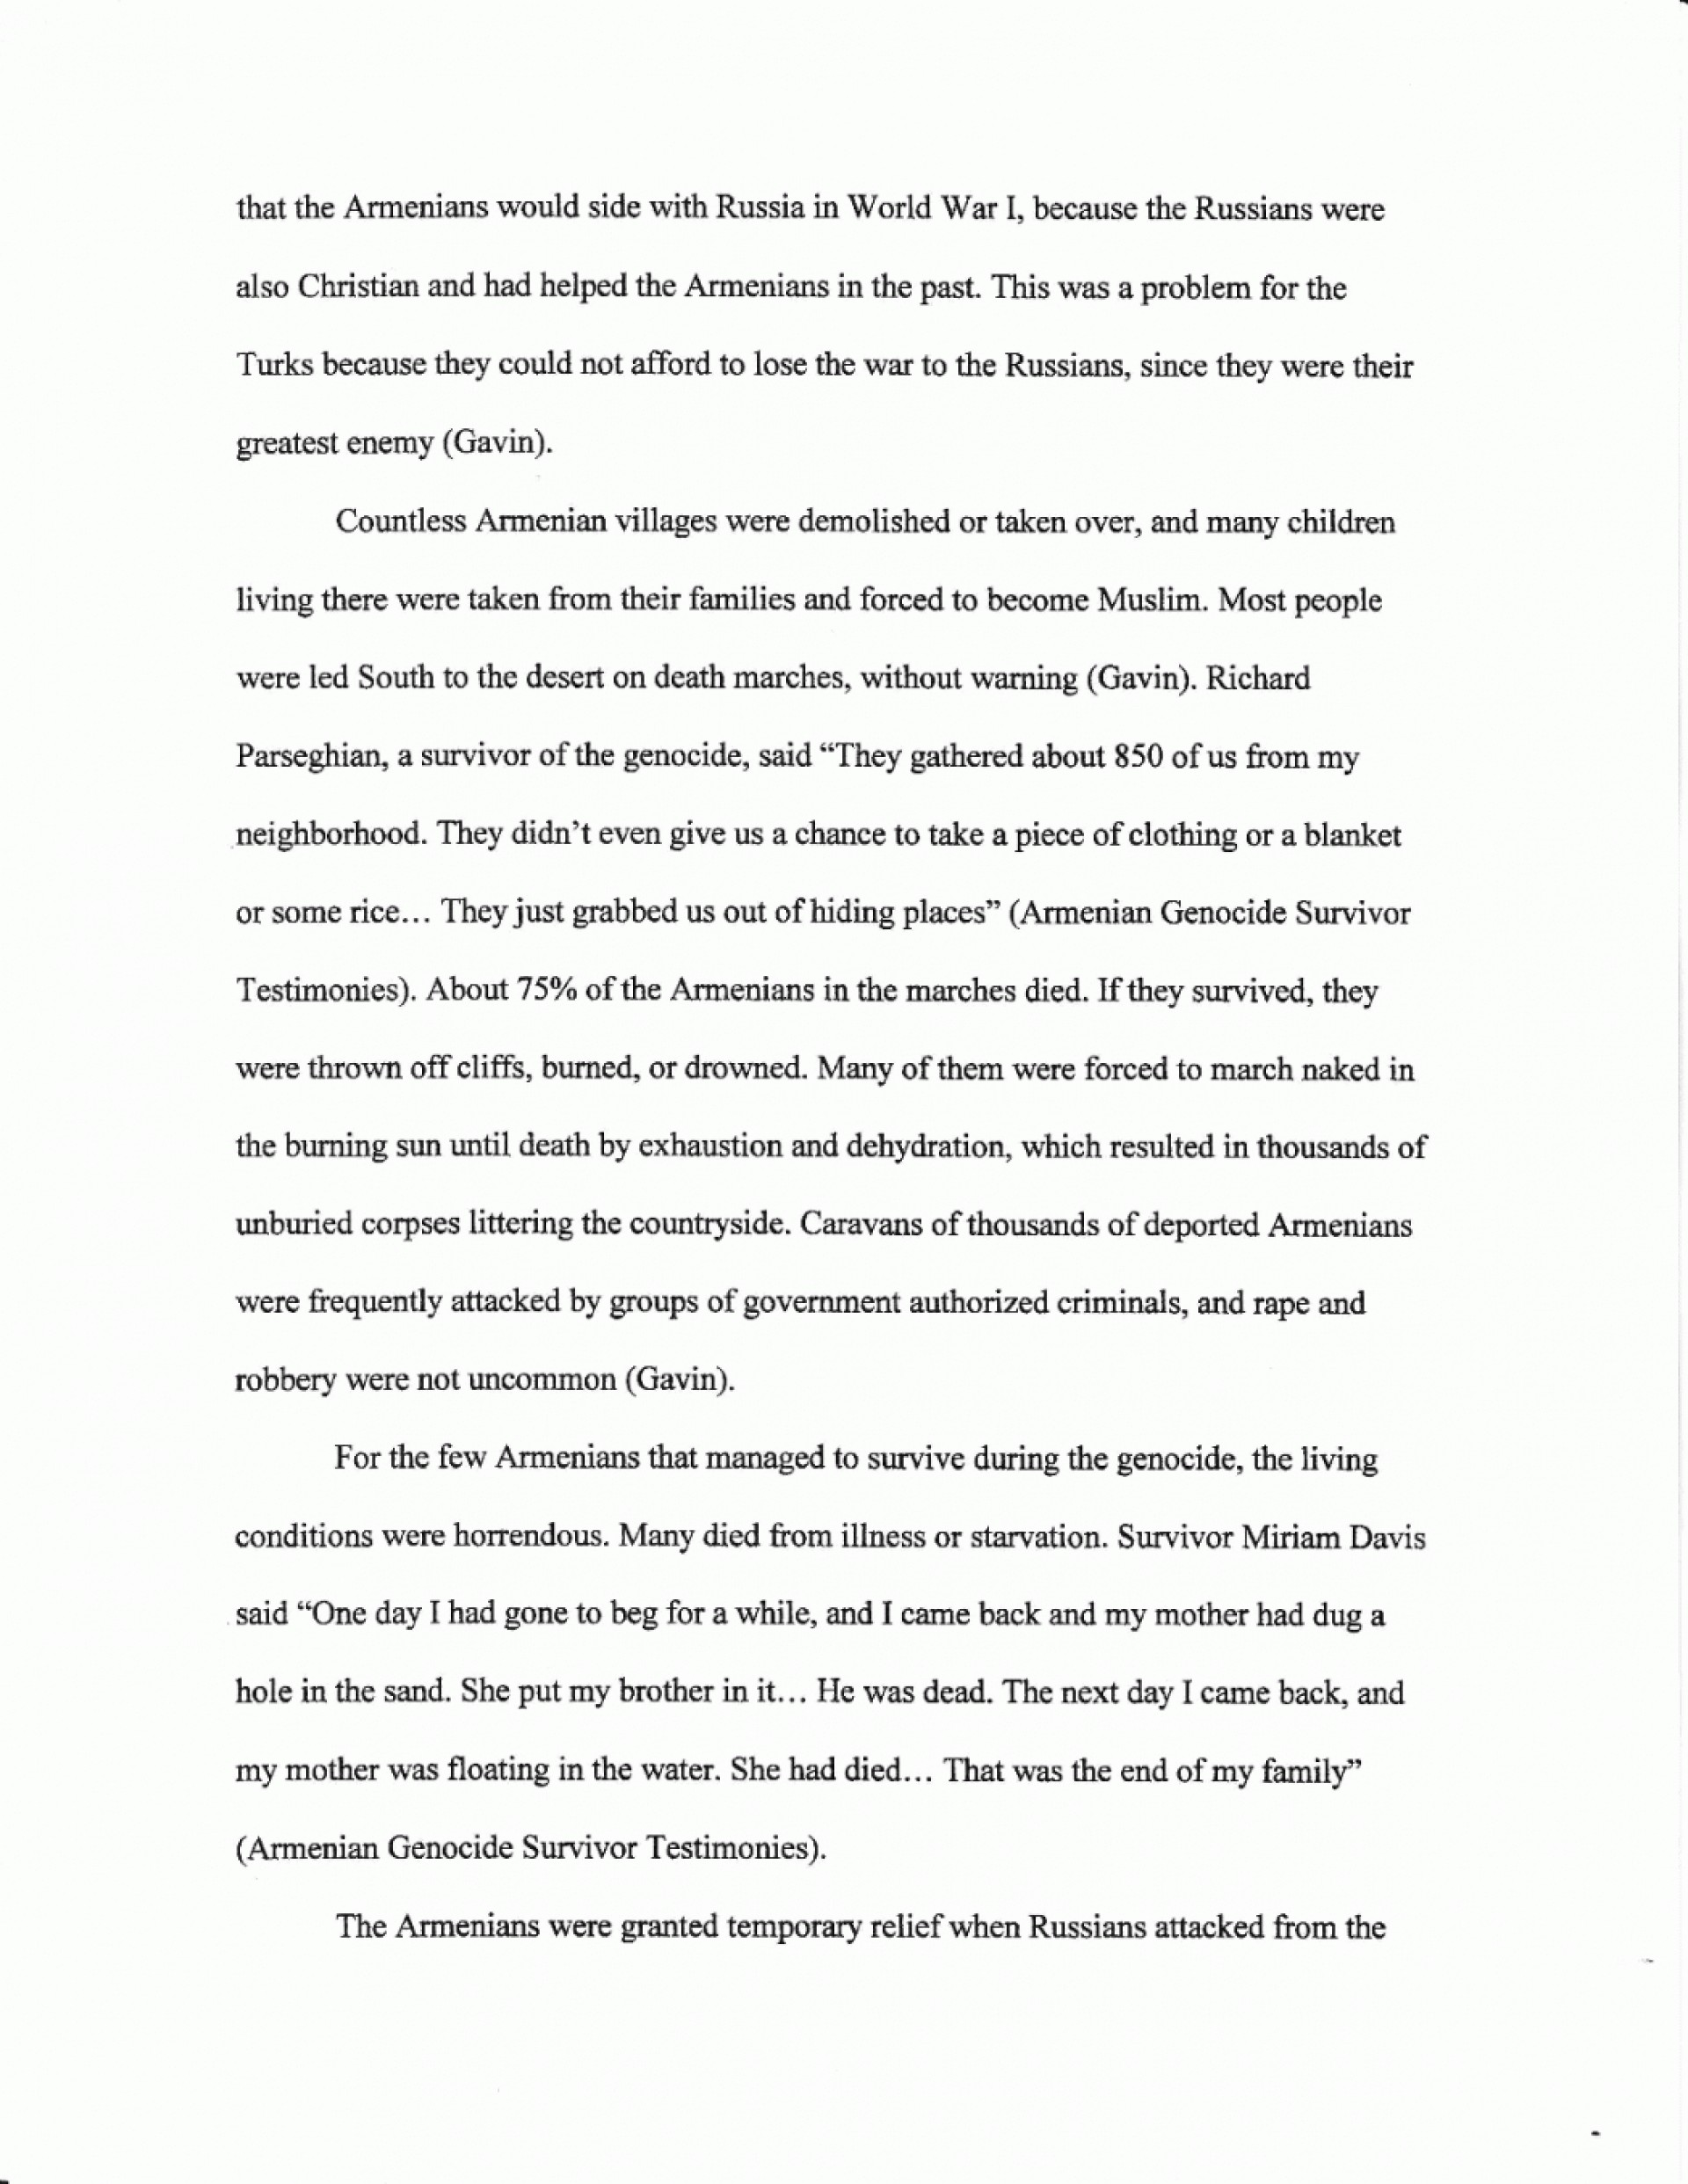 008 Internet Essay Introduction Sample Resume Format For Experienced R Writing Advantages And Disadvantages Of In Hindi 1048x1356 Phenomenal French On Language Wikipedia Kannada 1920